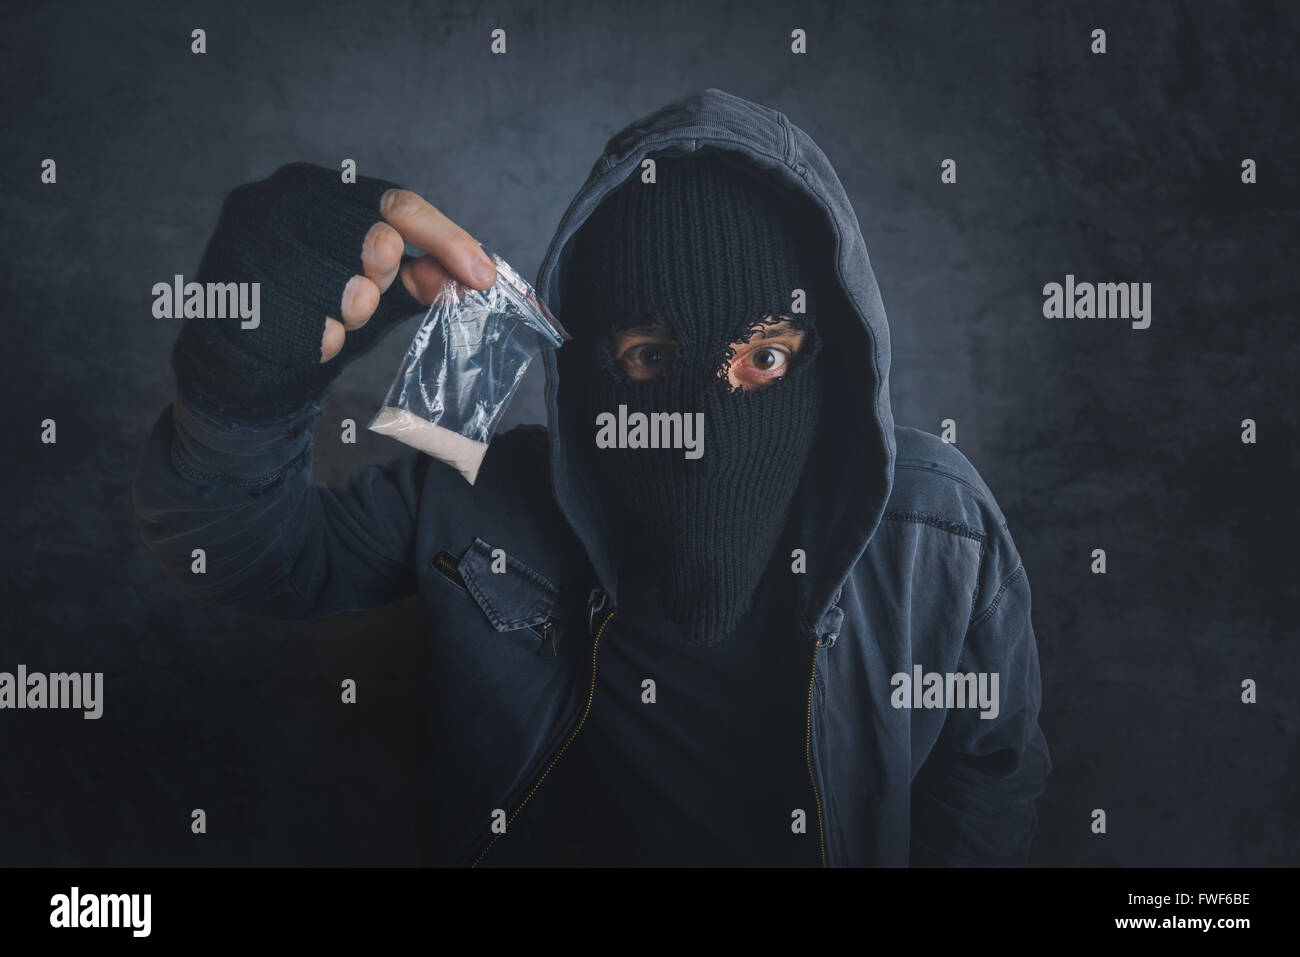 Drug dealer offering narcotic substance to addict on the street, unrecognizable hooded criminal selling drugs in - Stock Image